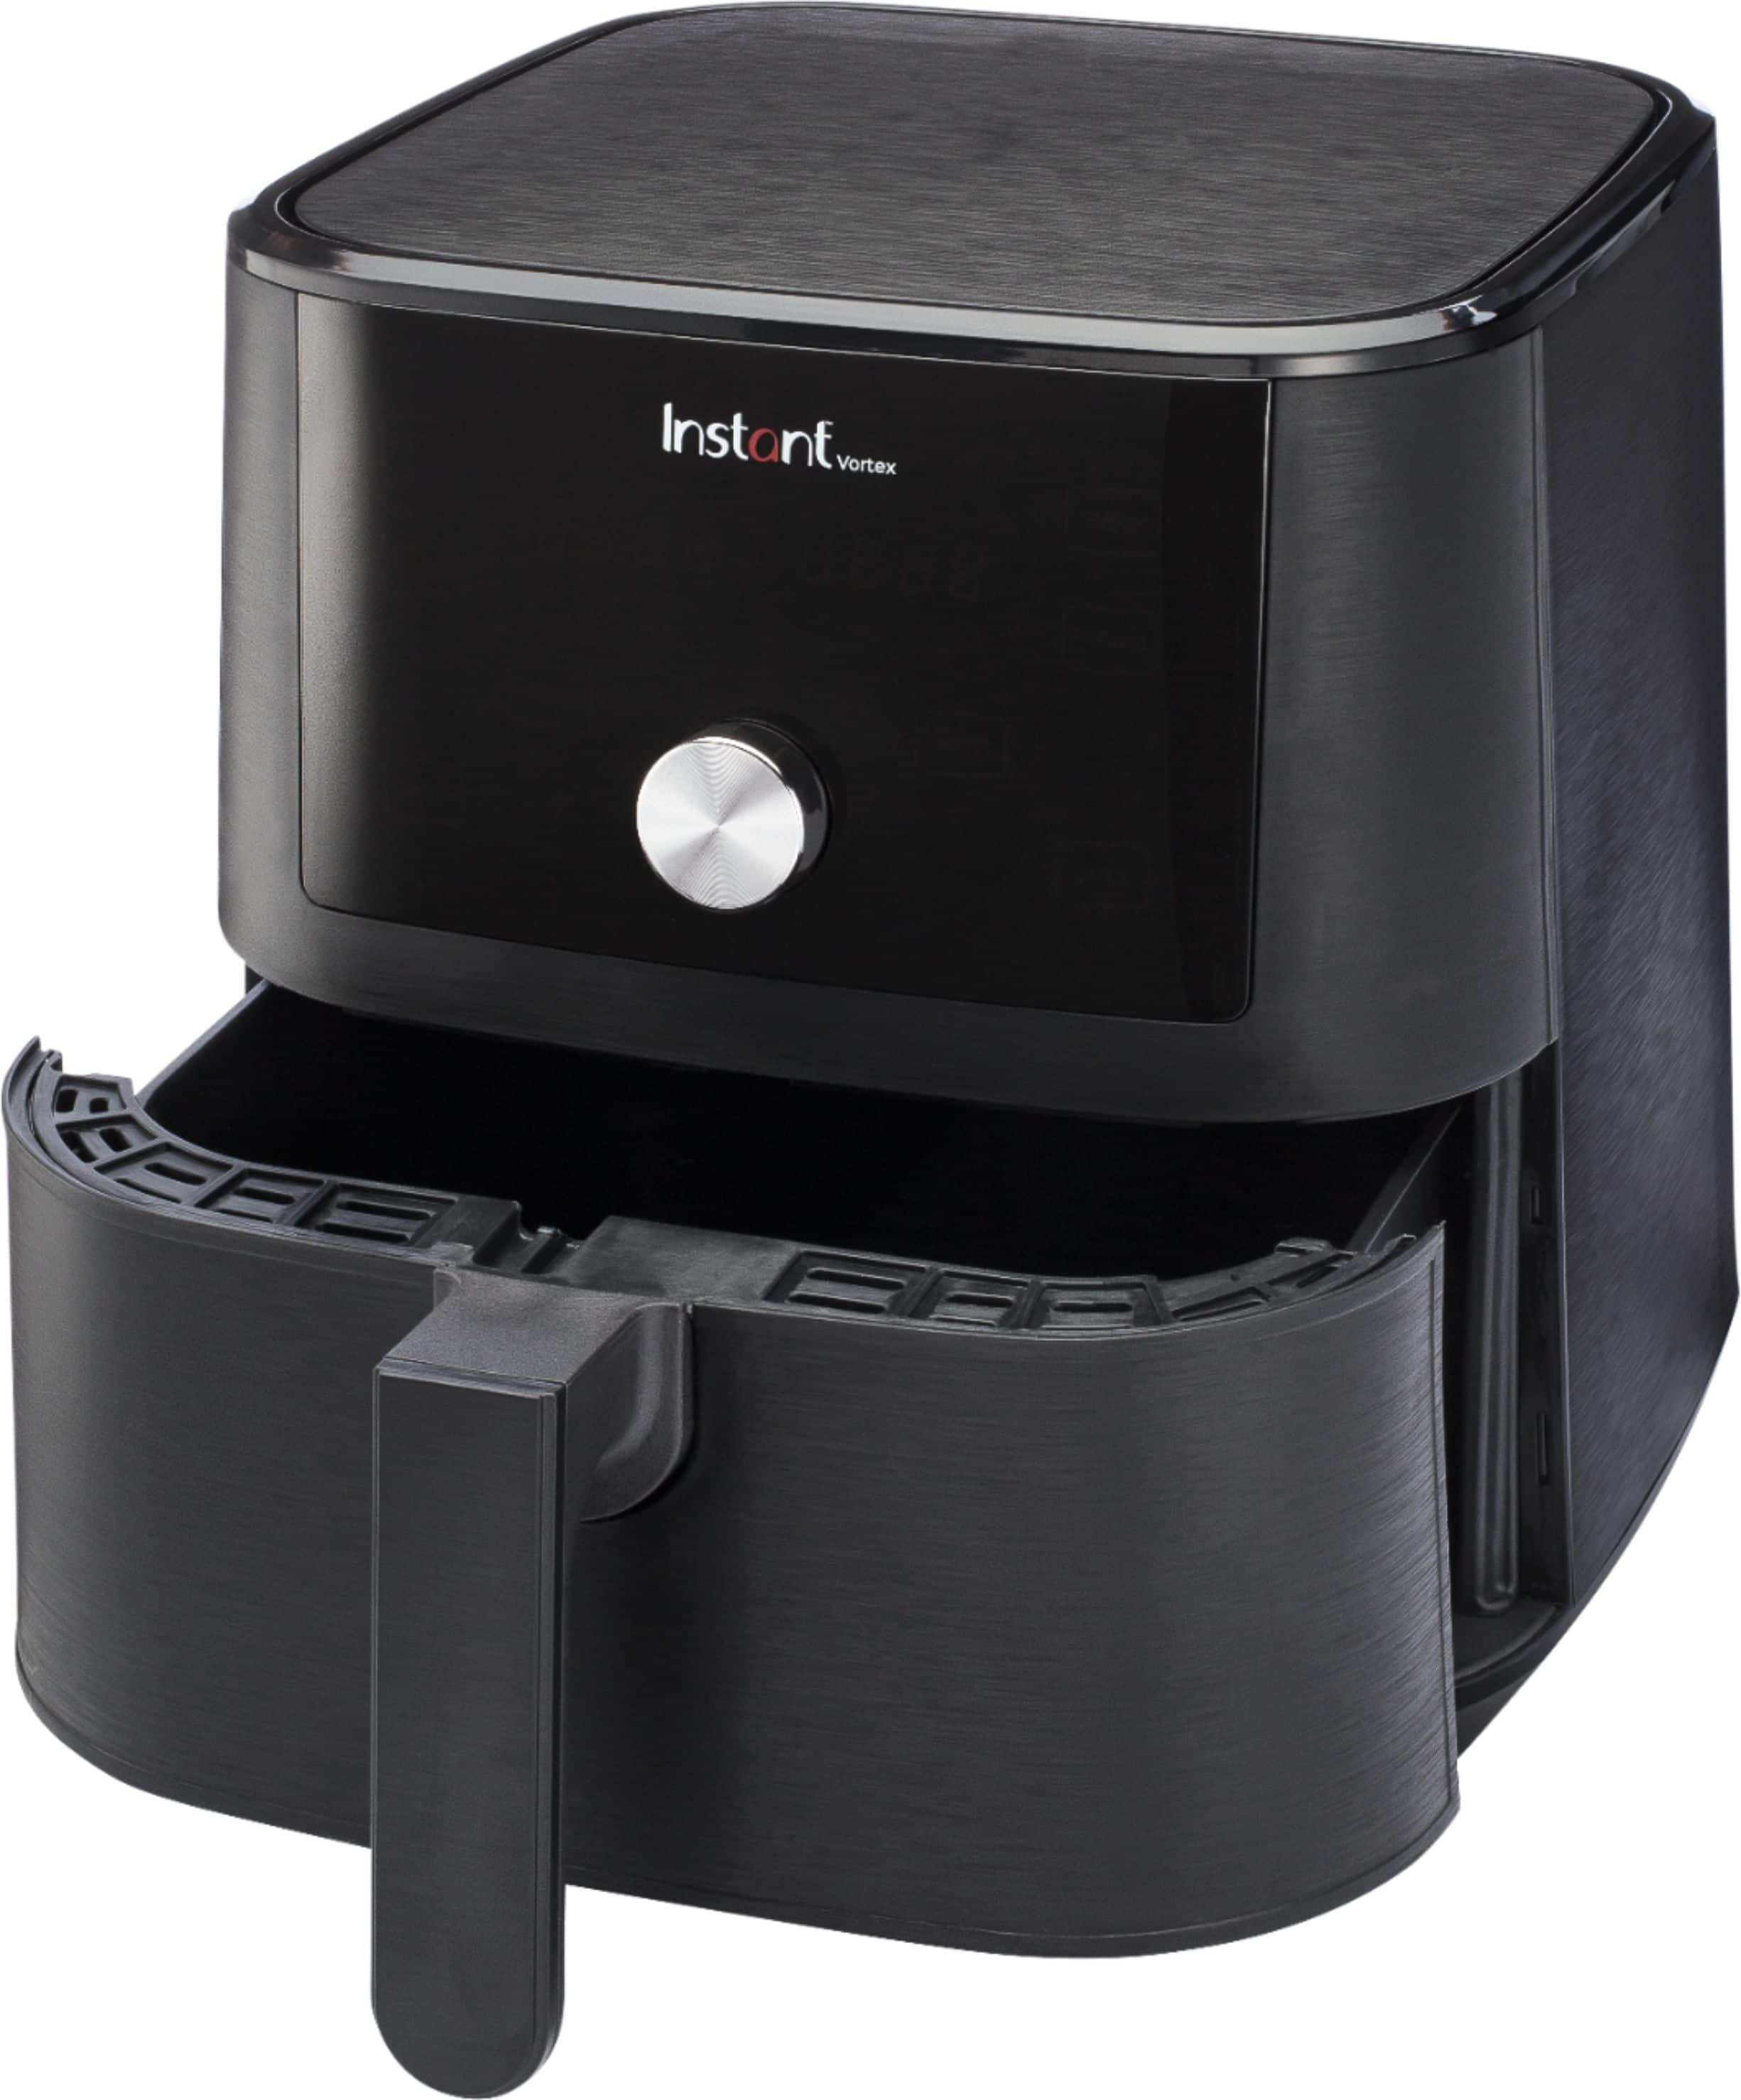 Instant 6-Quart Vortex Air Fryer (Open Box)